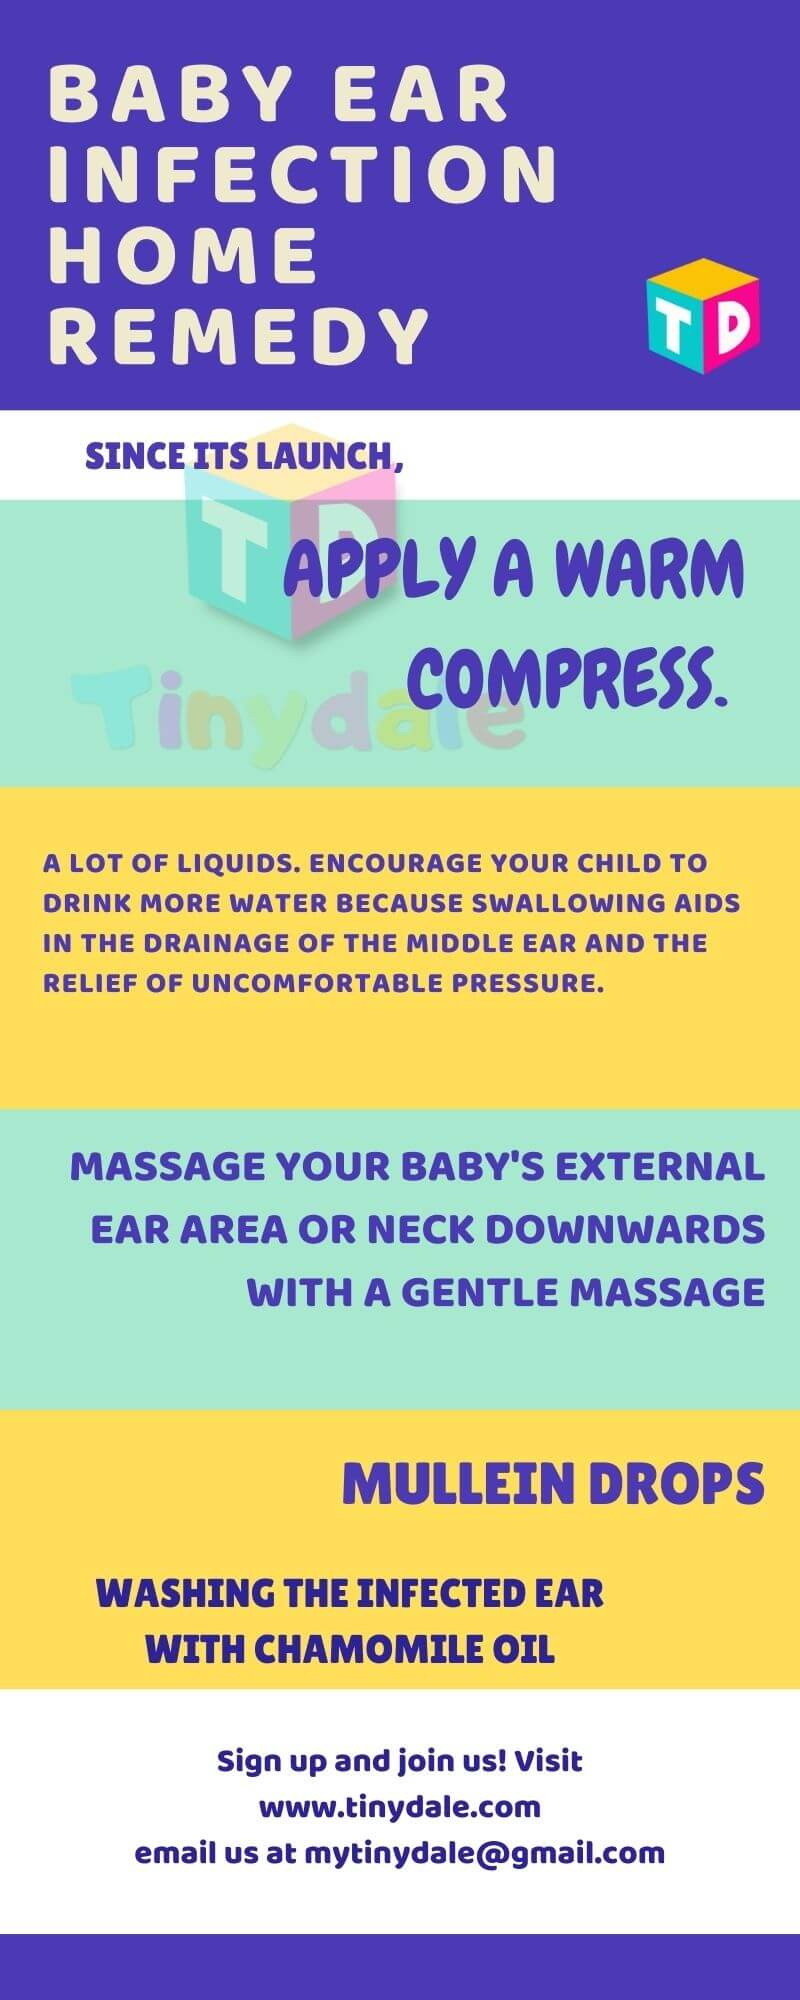 Baby ear infection Home Remedy - tinydale